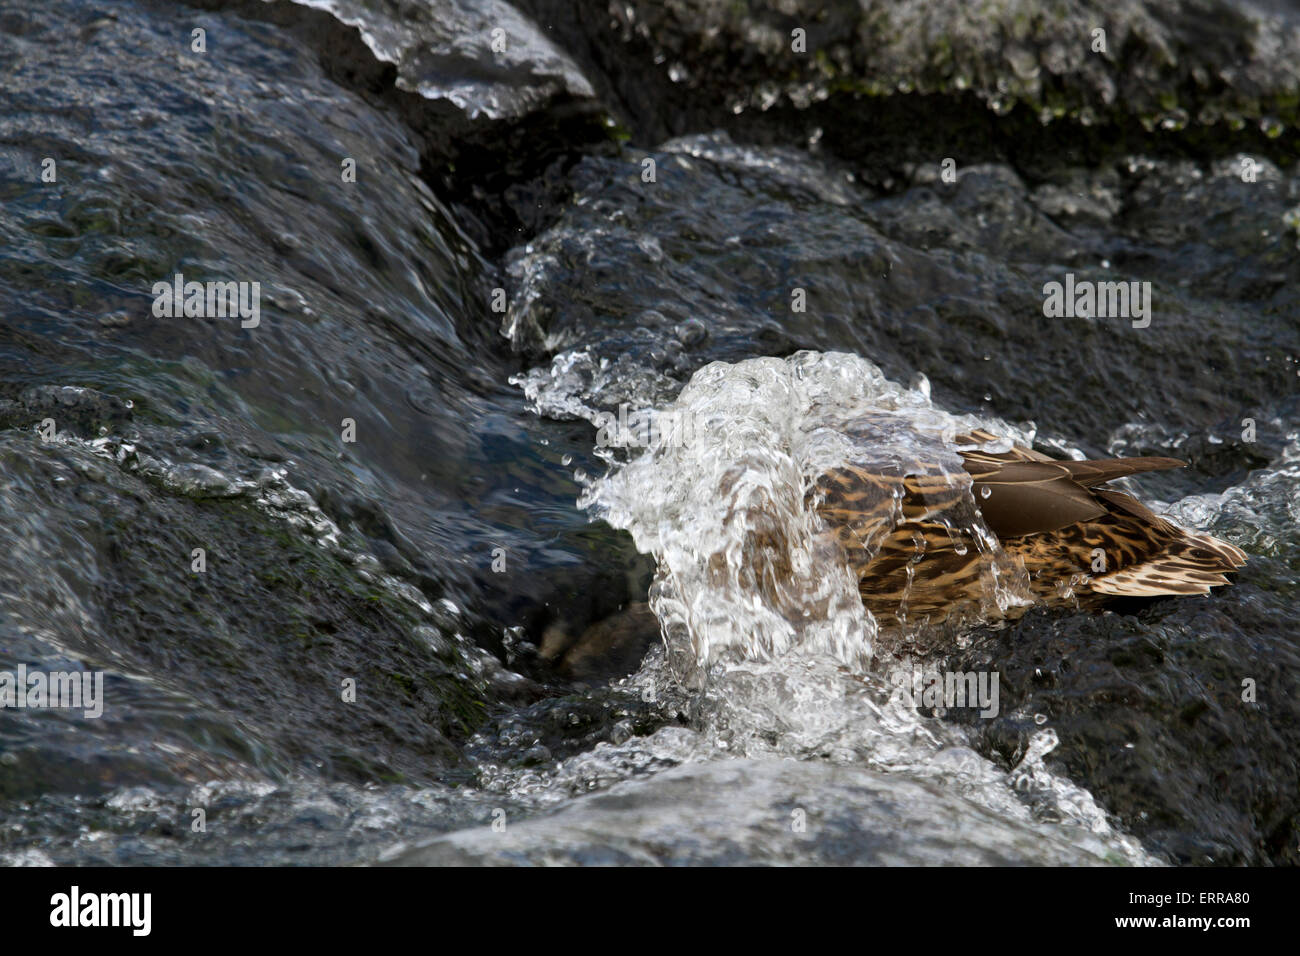 Diving mallard - Stock Image